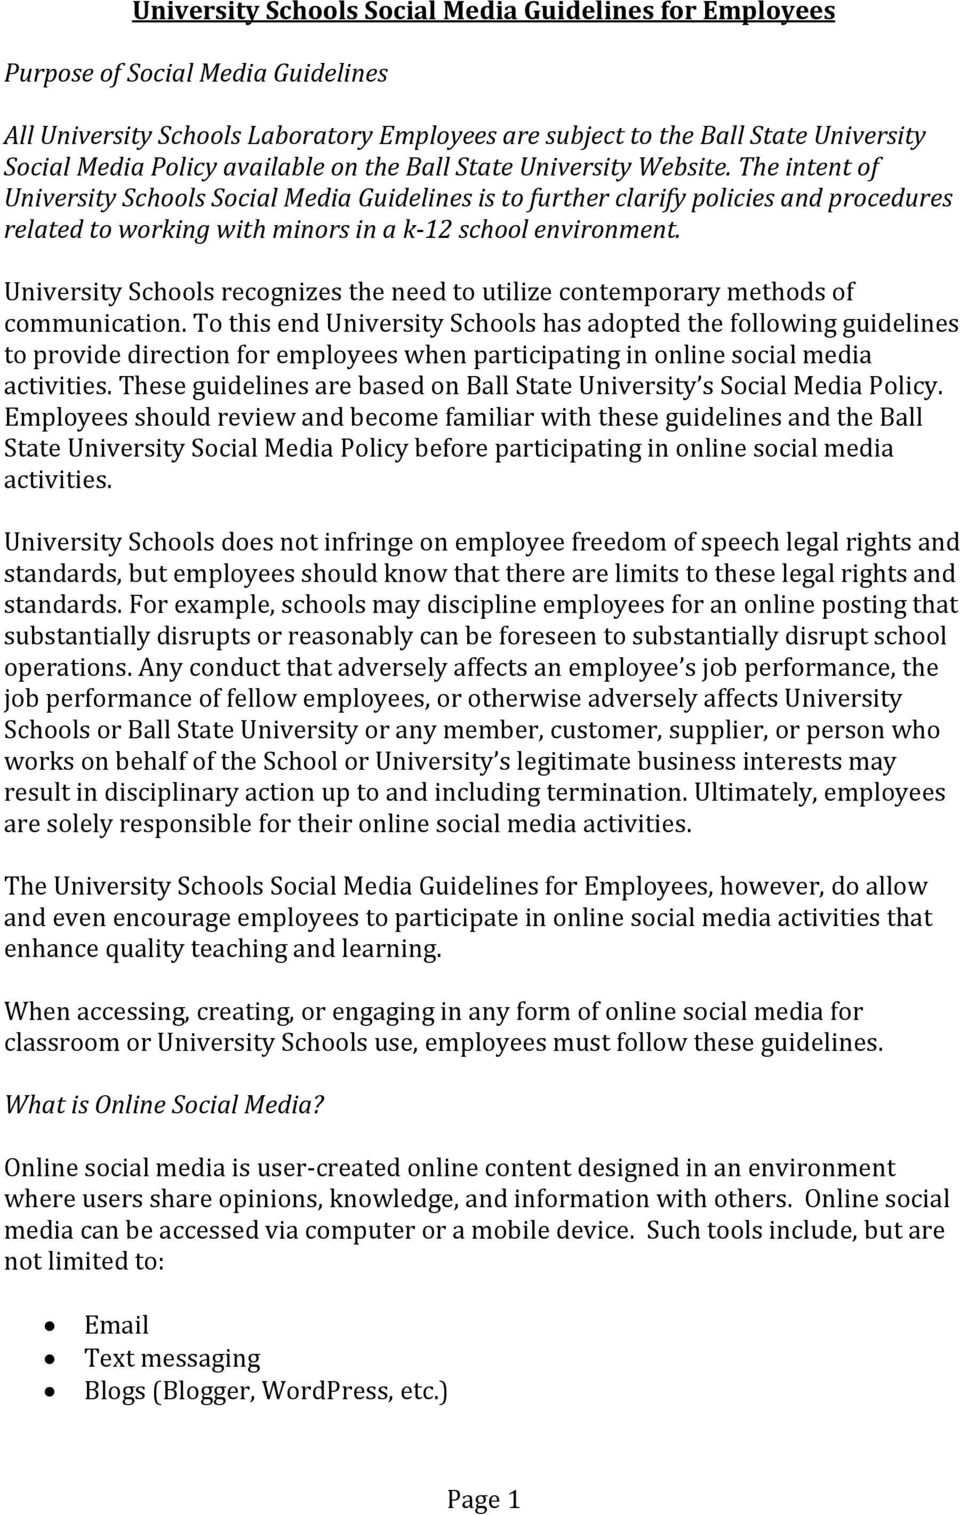 The intent of University Schools Social Media Guidelines is to further clarify policies and procedures related to working with minors in a k-12 school environment.